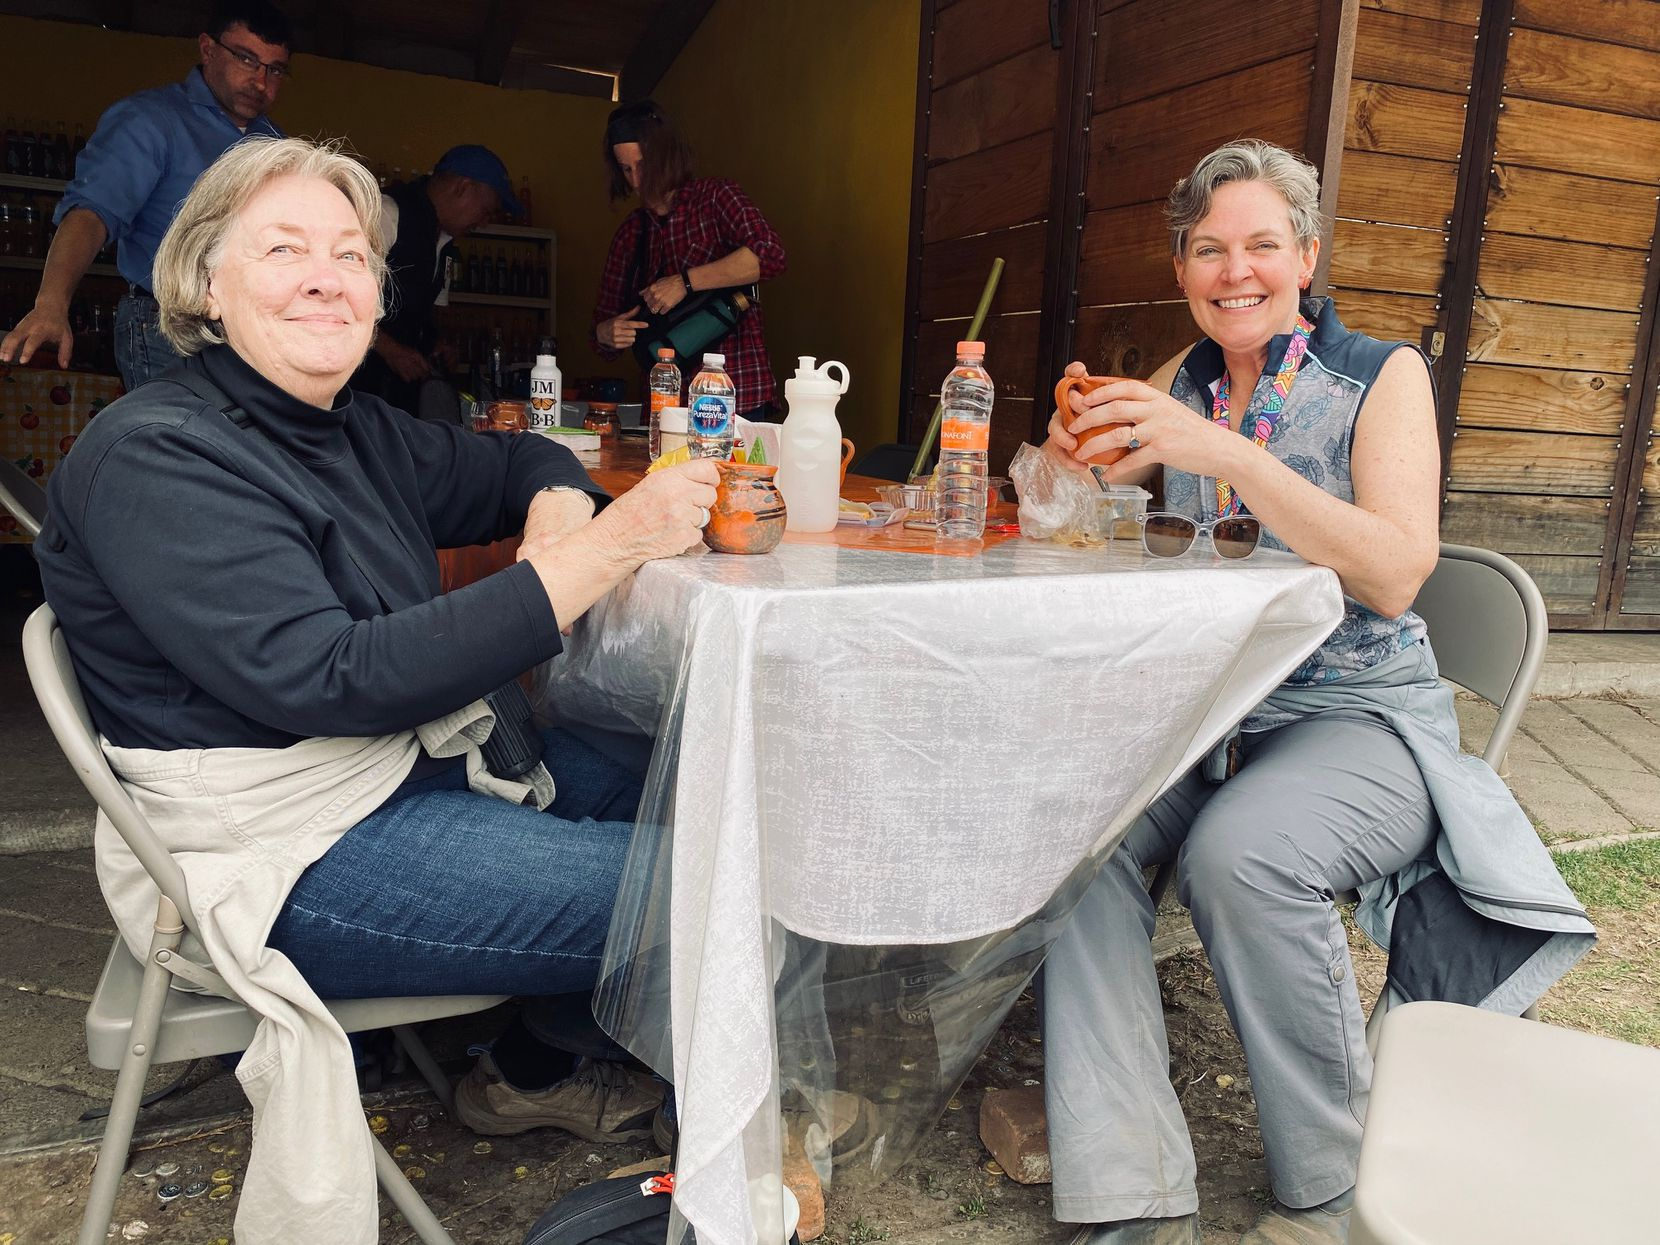 Betsy and her daughter Lisa A. Johnson enjoy lunch in El Rosario, Michoacan, after visiting the monarch butterfly sanctuary on March 5. They said they weren't worry about coronavirus, and relieved to be away from the nonstop updates in the United States.